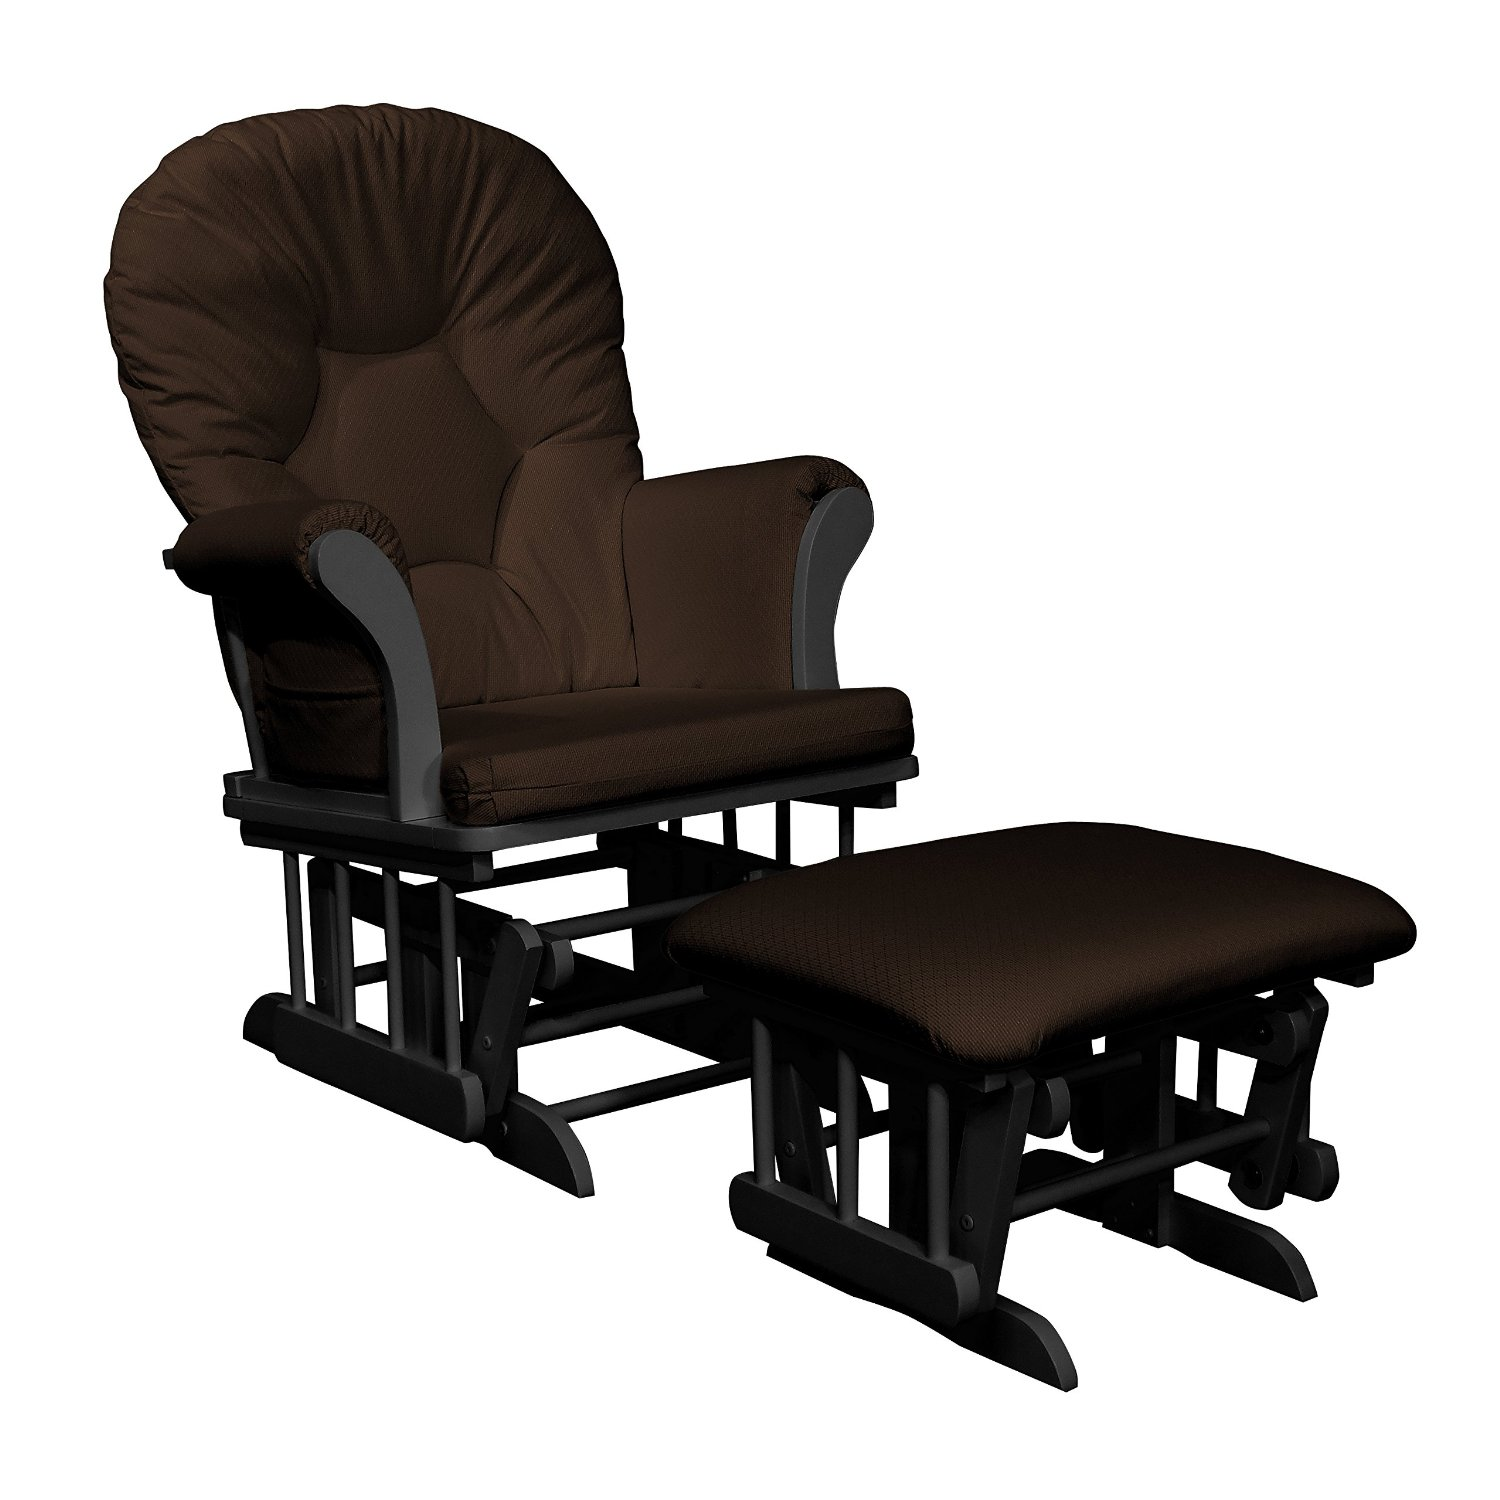 Shermag Dayton Sleigh Glider Rocker and Ottoman, Chocolate